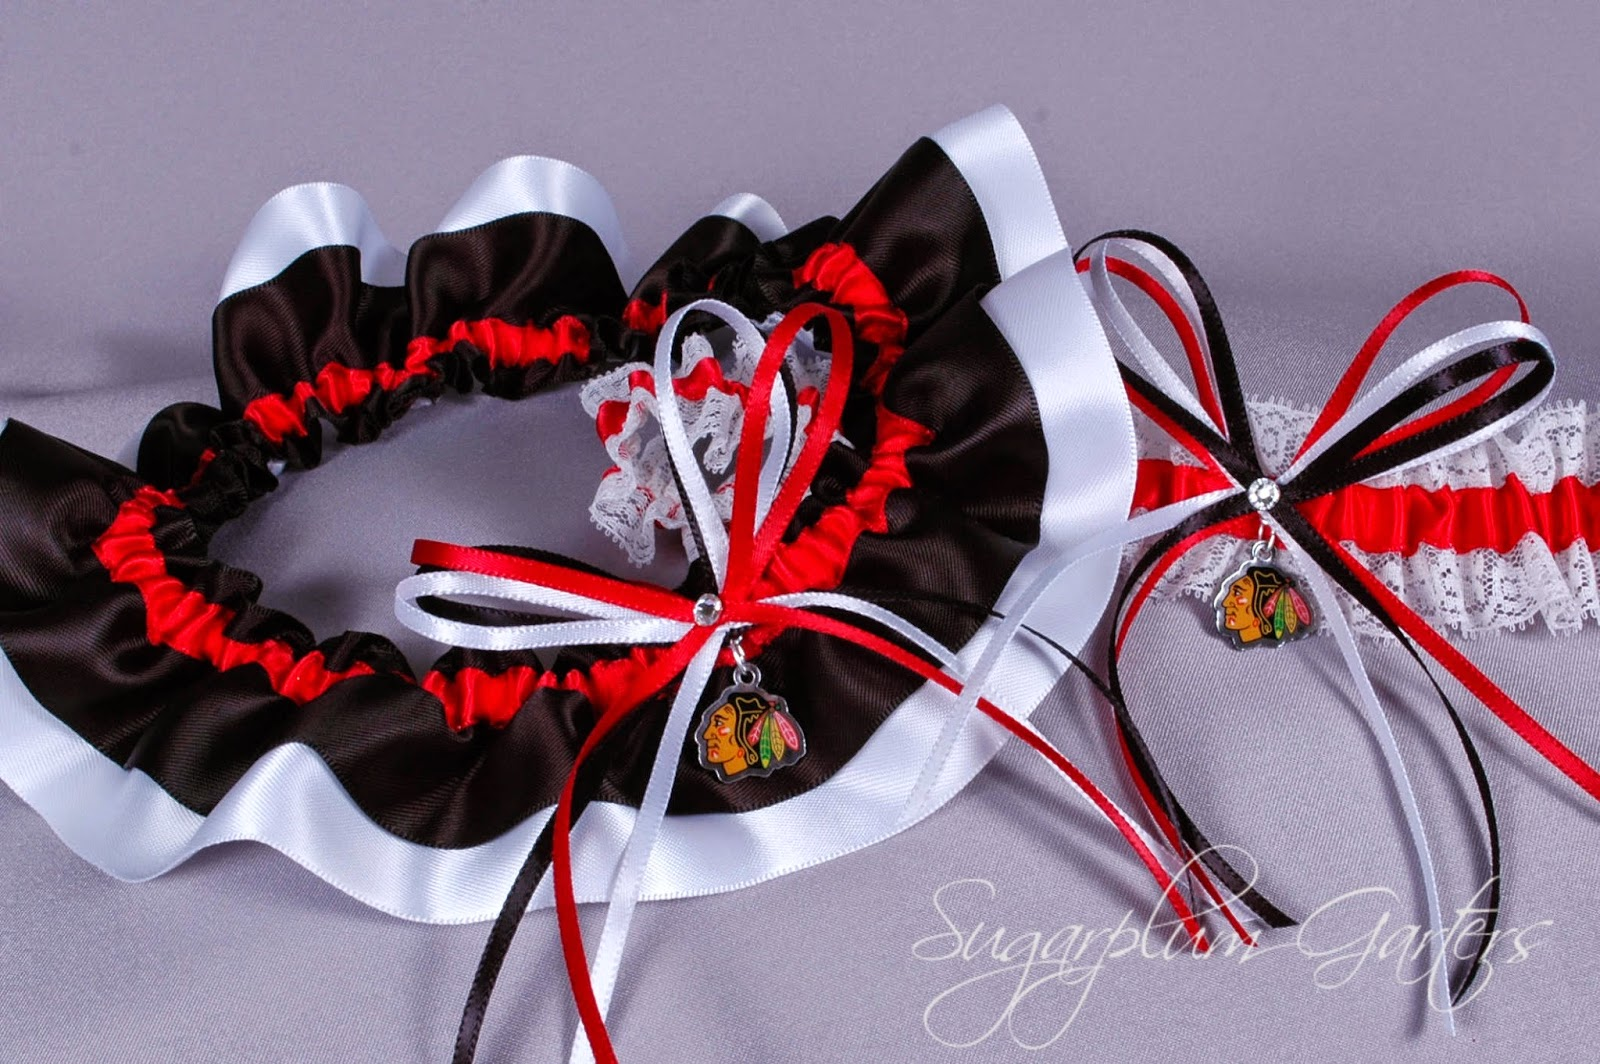 Custom Chicago Blackhawks Wedding Garter Set by Sugarplum Garters